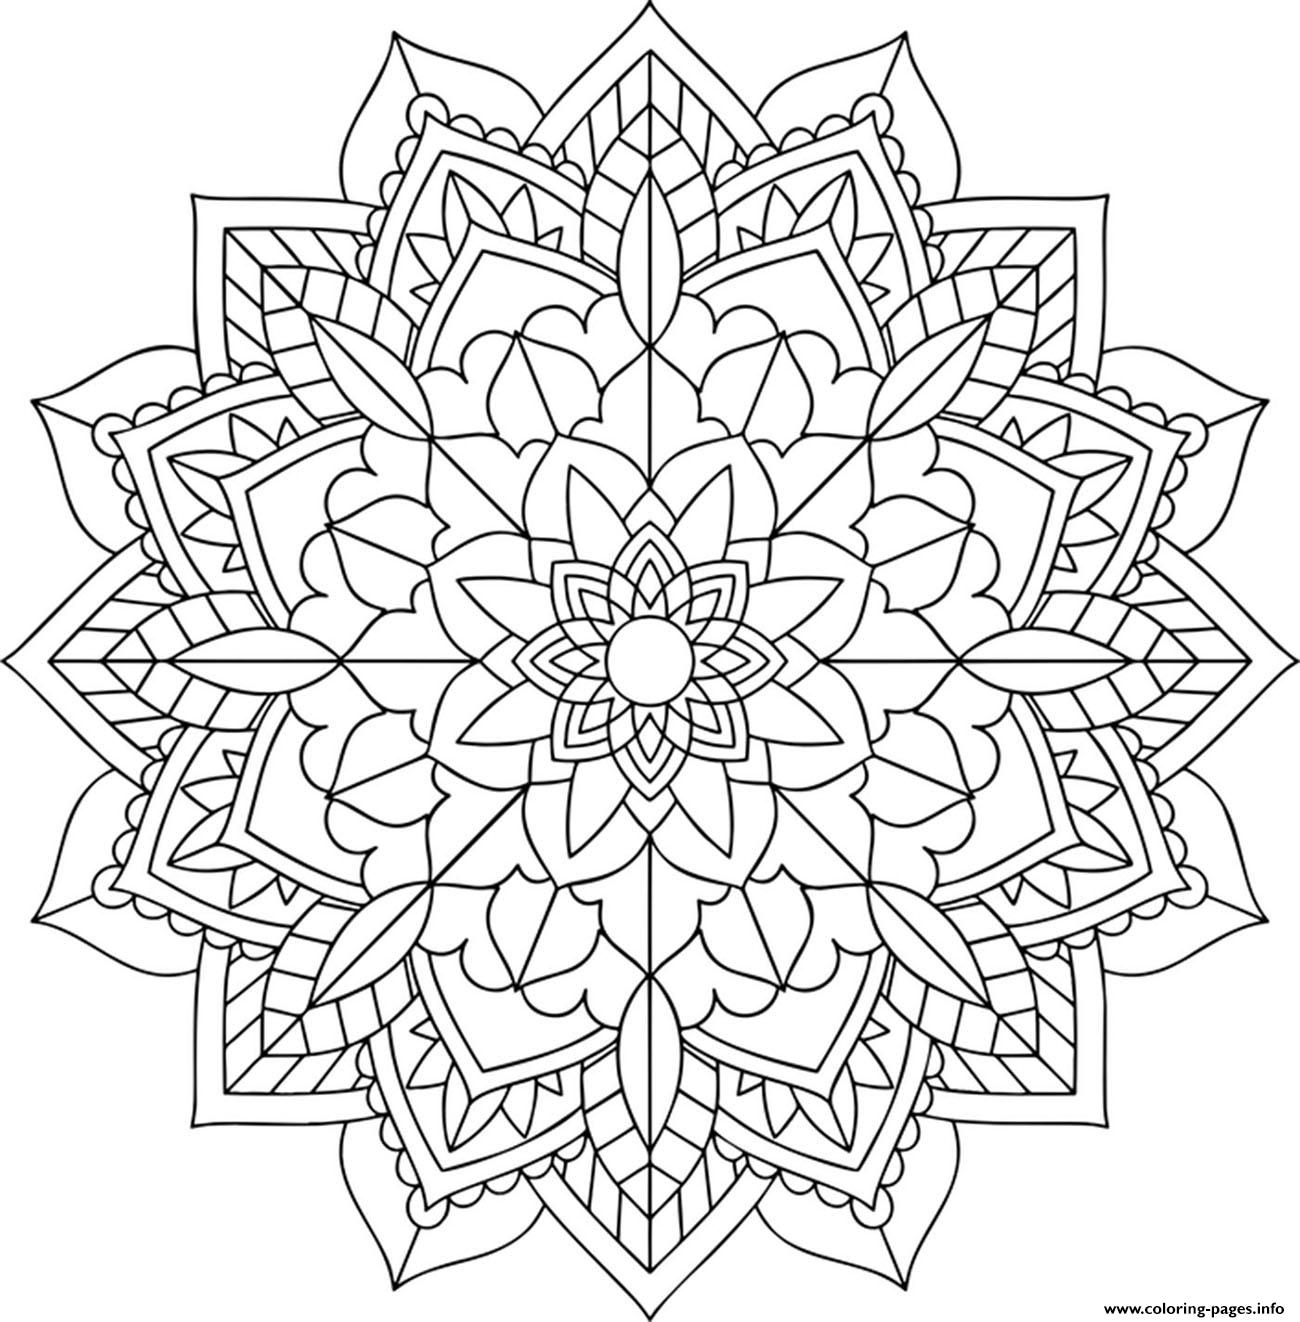 mandala pictures to color the big flower mandalas adult coloring pages to mandala color pictures